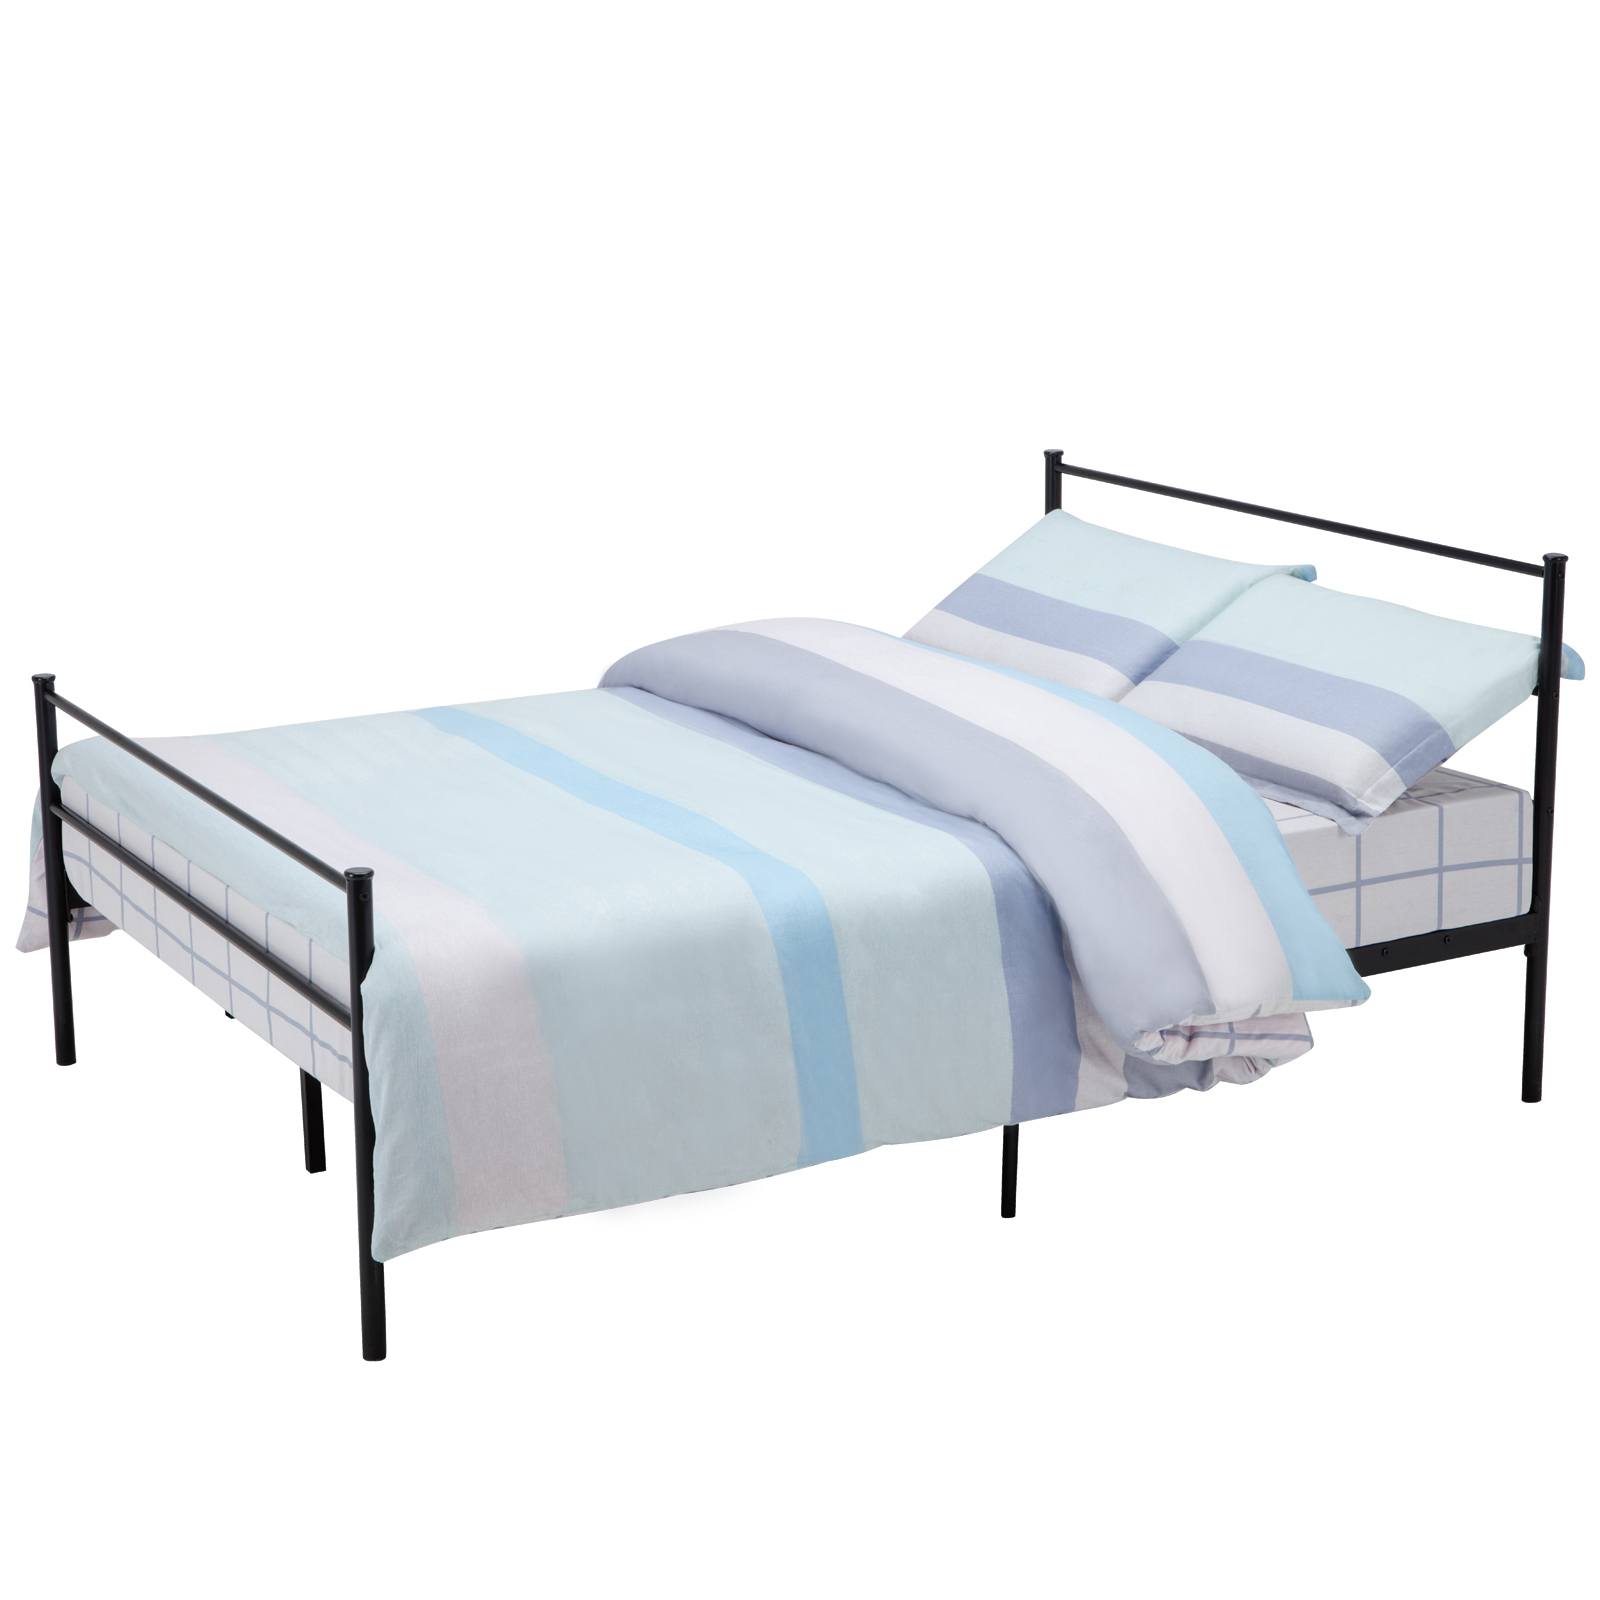 twin full queen size metal bed frame platform headboards 6 leg bedroom furniture ebay. Black Bedroom Furniture Sets. Home Design Ideas